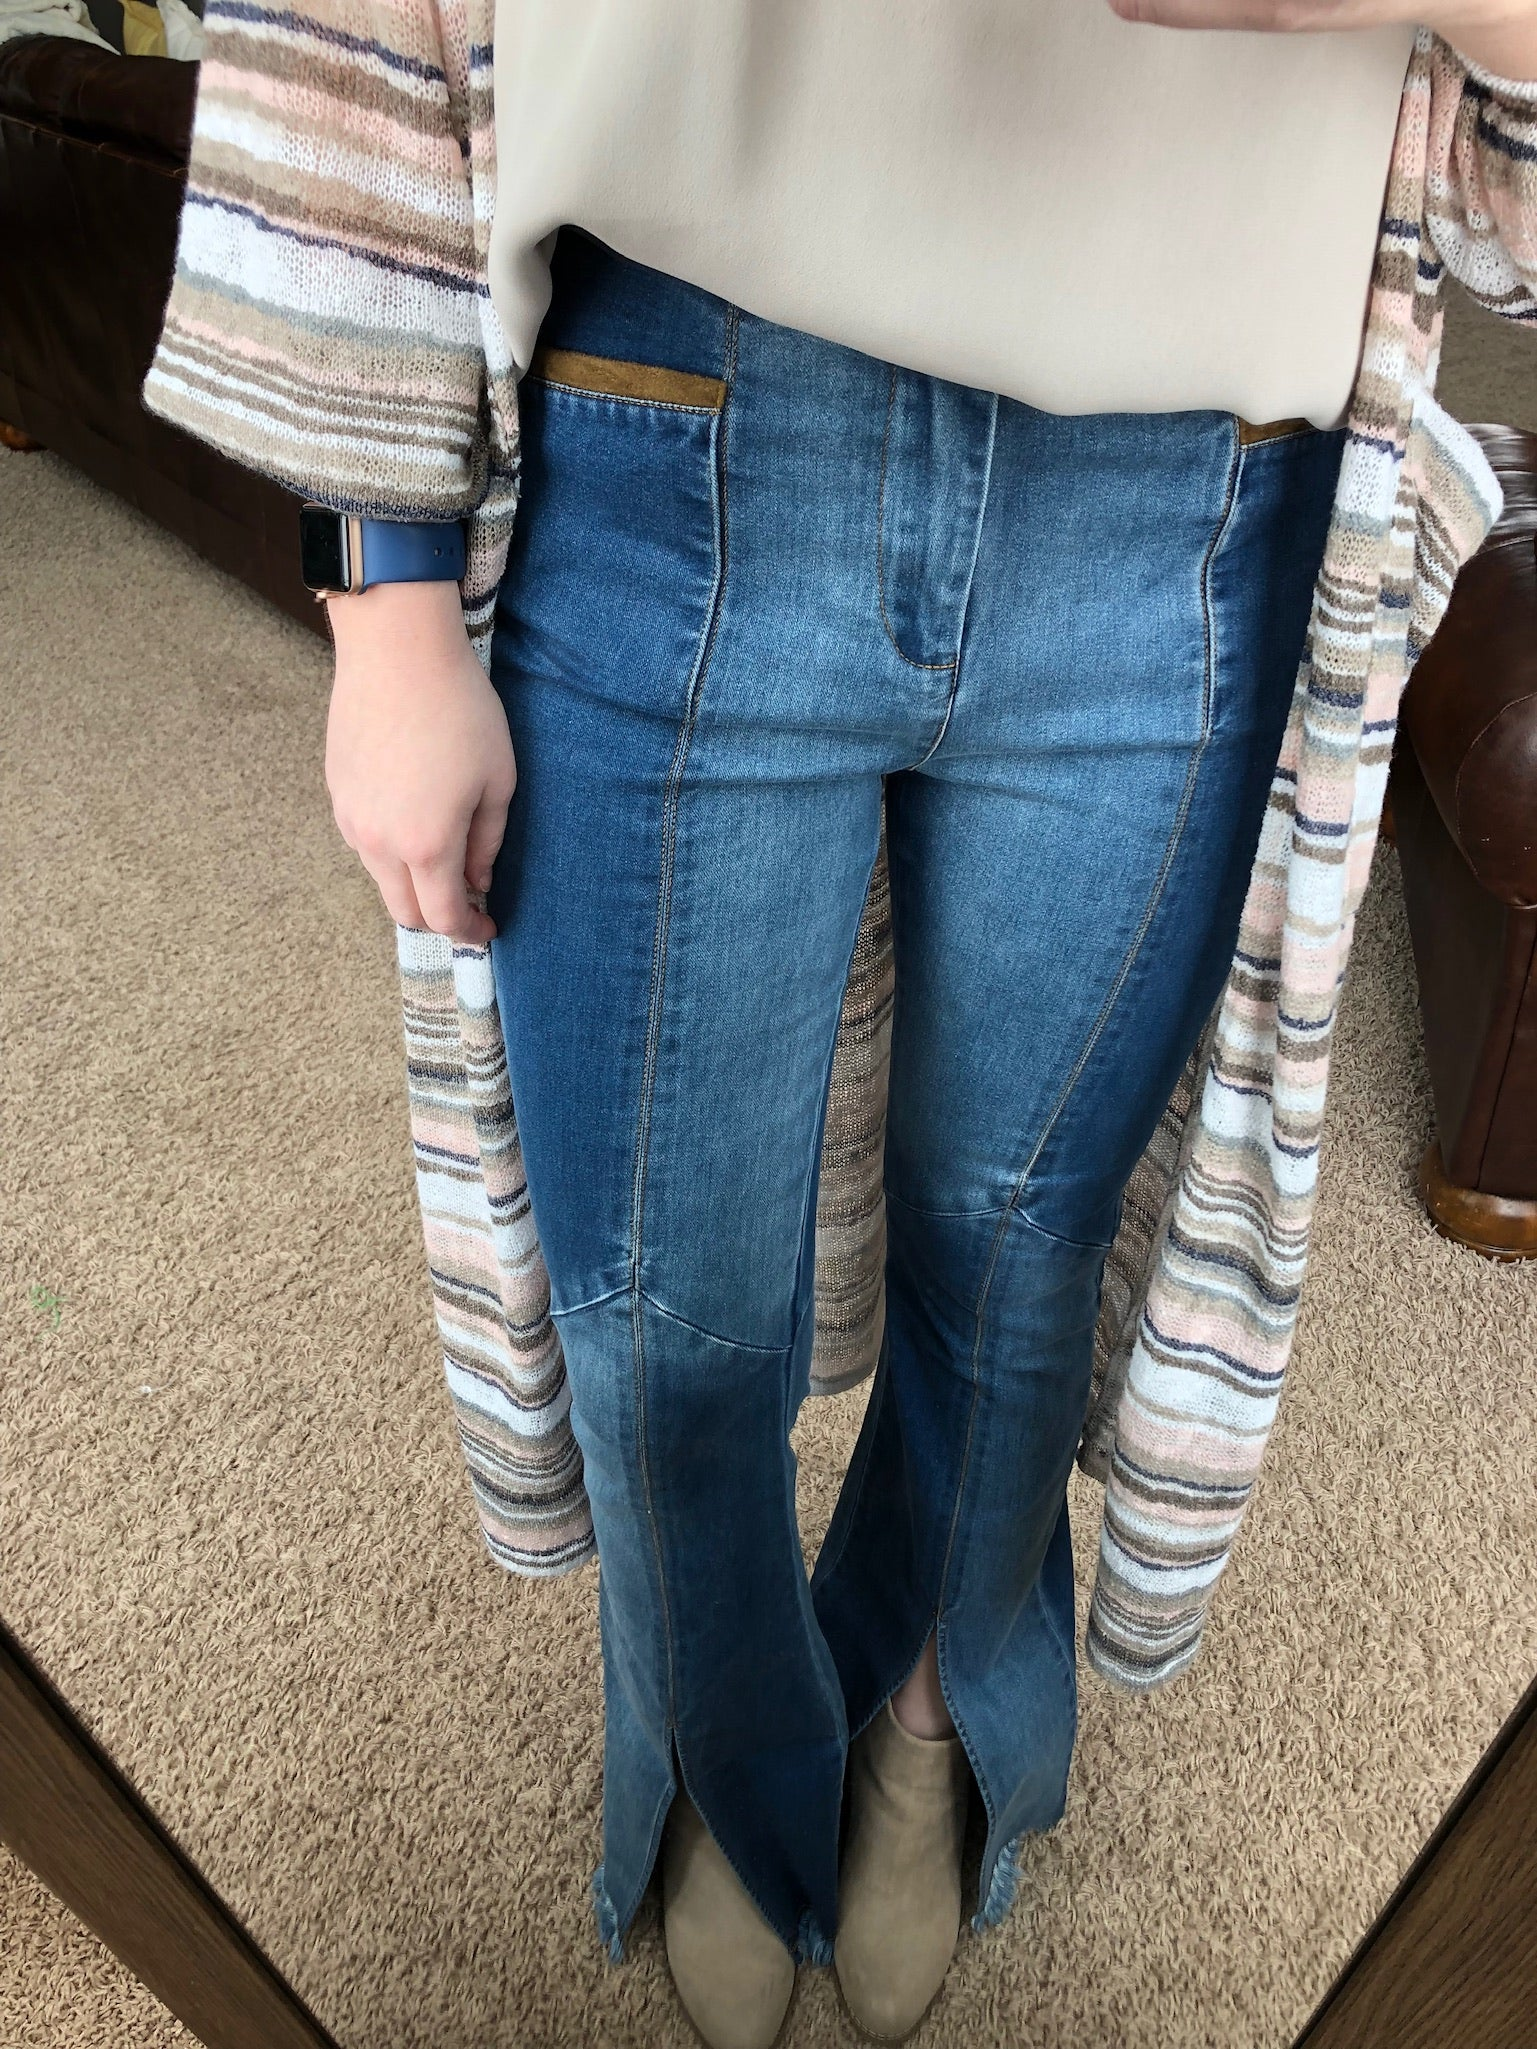 Two-Toned Throwback Denim Jean Flares